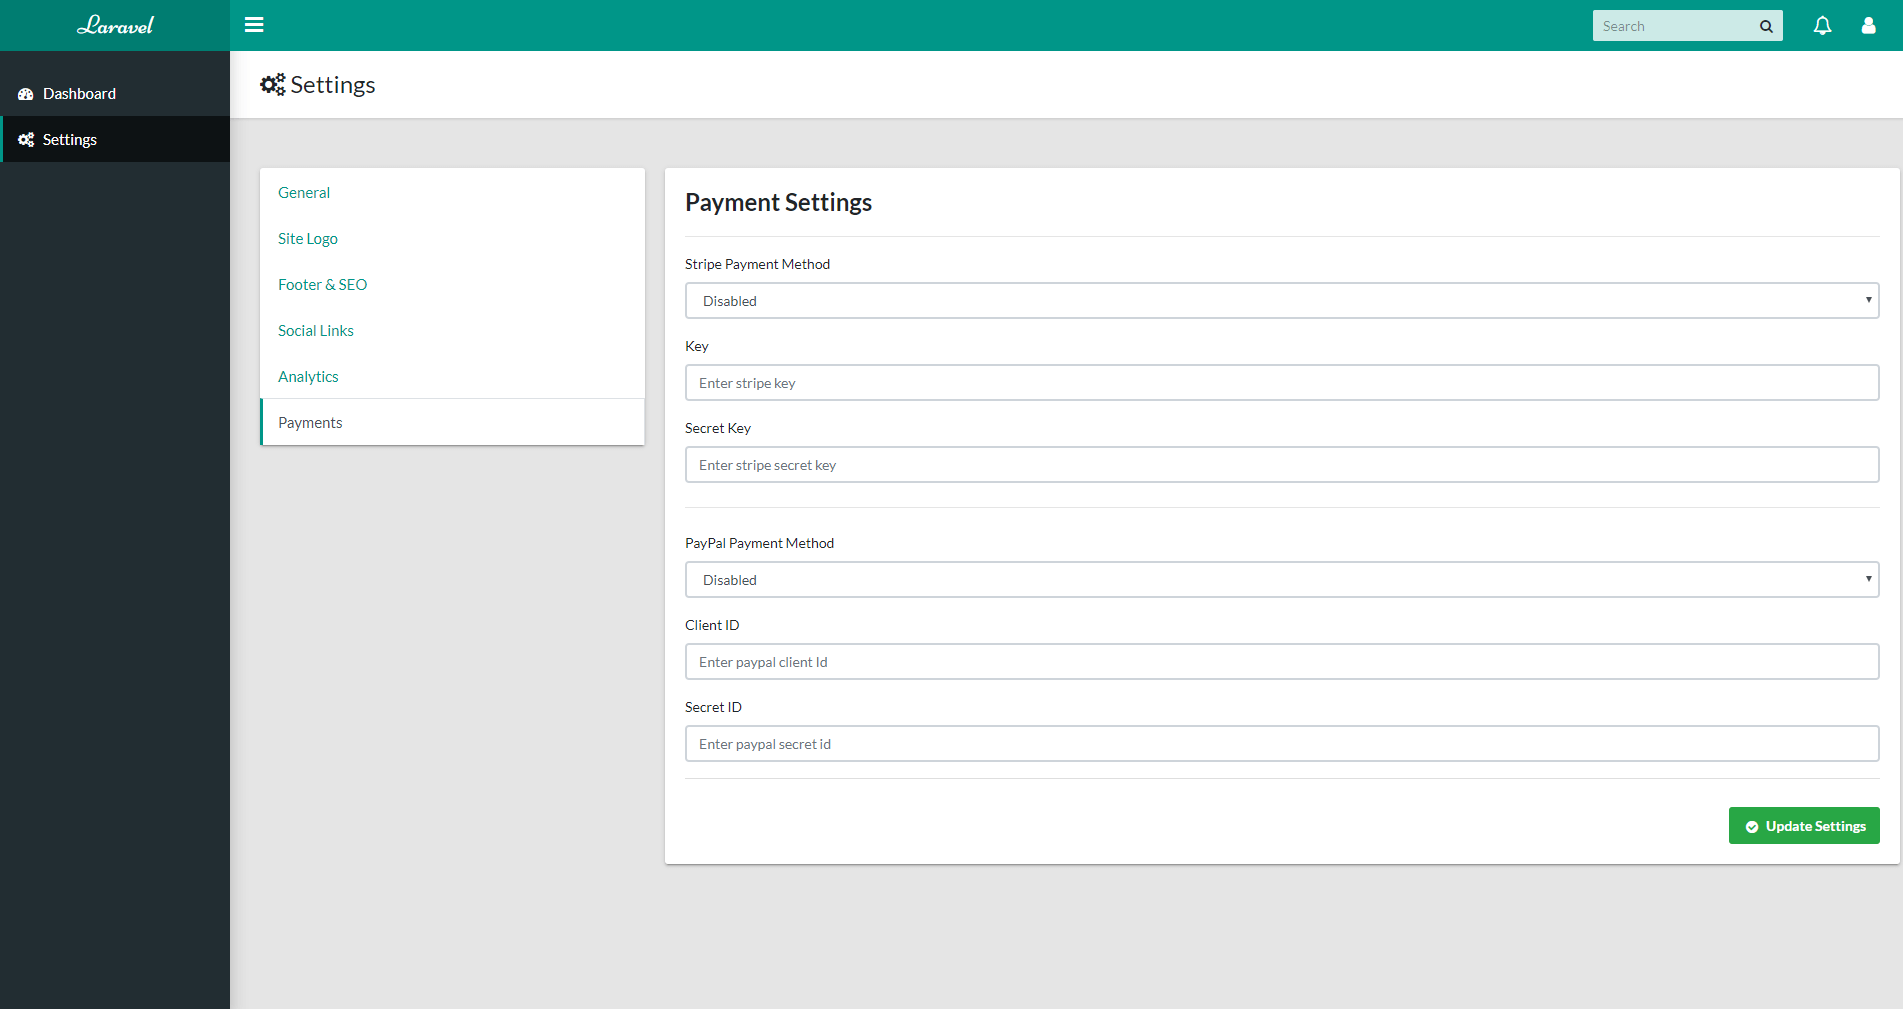 Settings Section - Payments